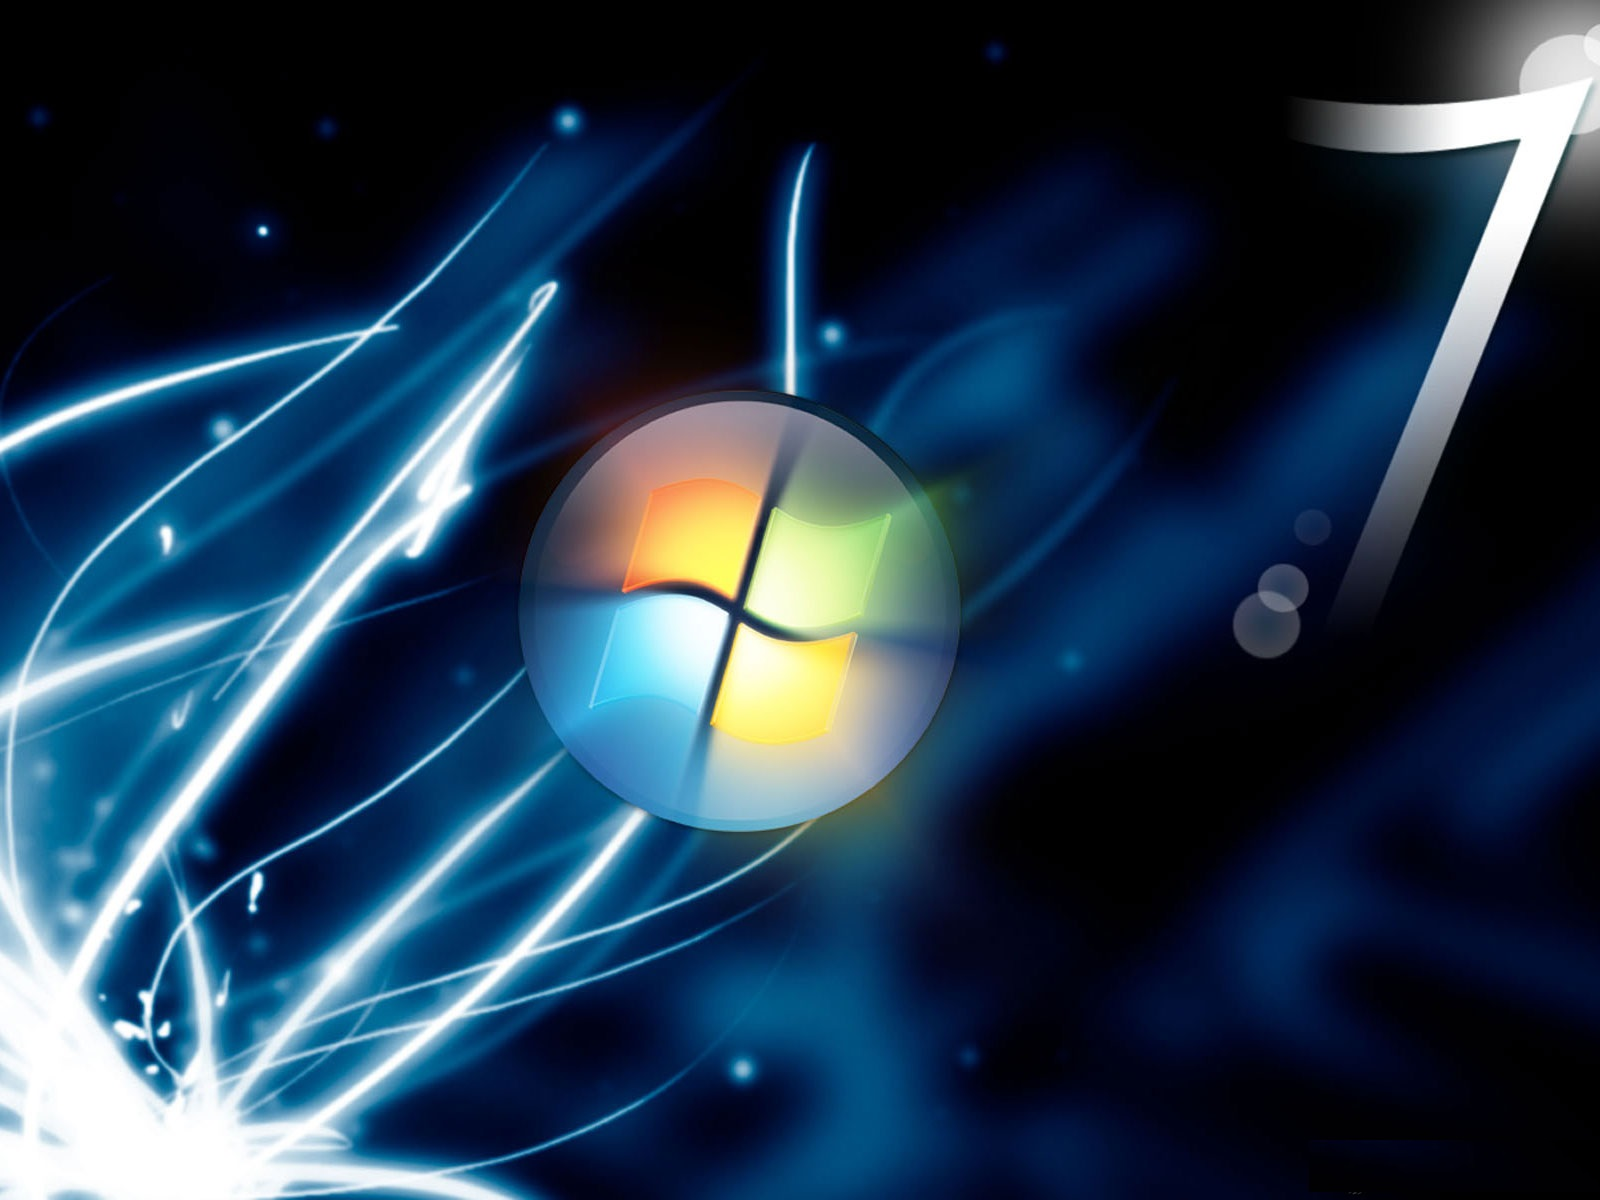 3D Windows Logo Wallpapers & Picture